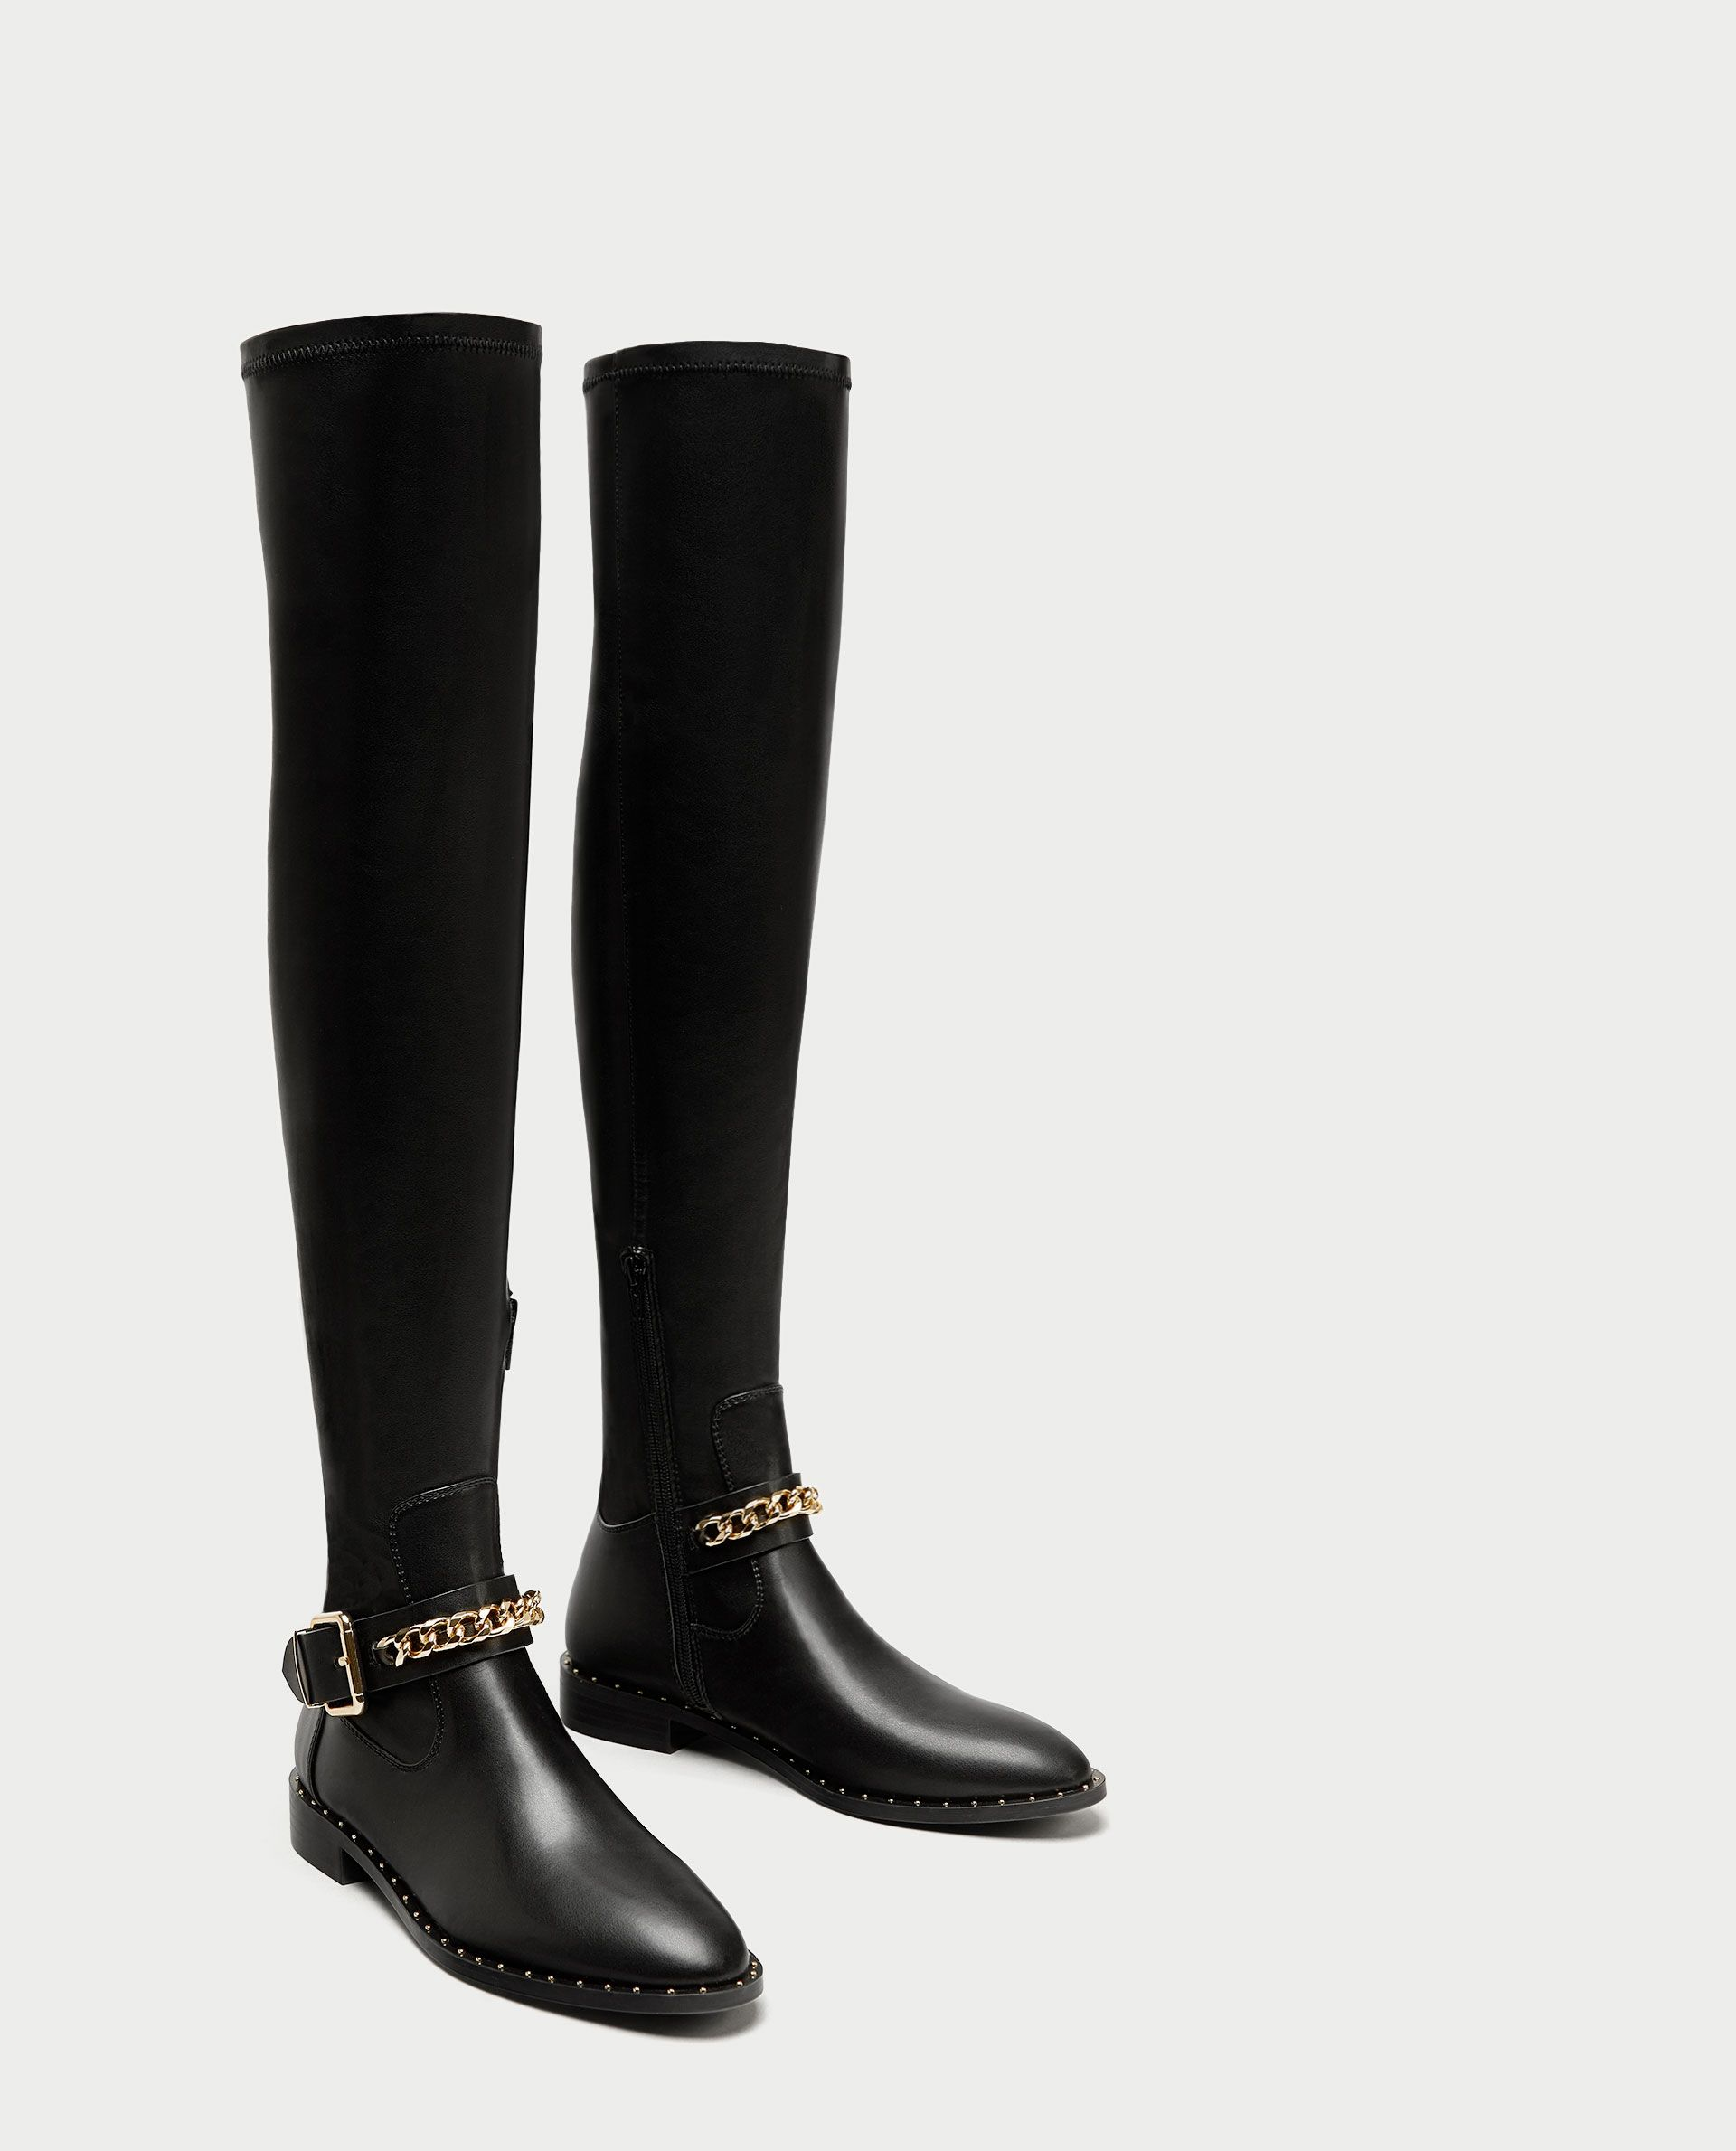 2aad2208d51 ZARA - WOMAN - FLAT OVER-THE-KNEE BOOTS WITH CHAIN DETAIL